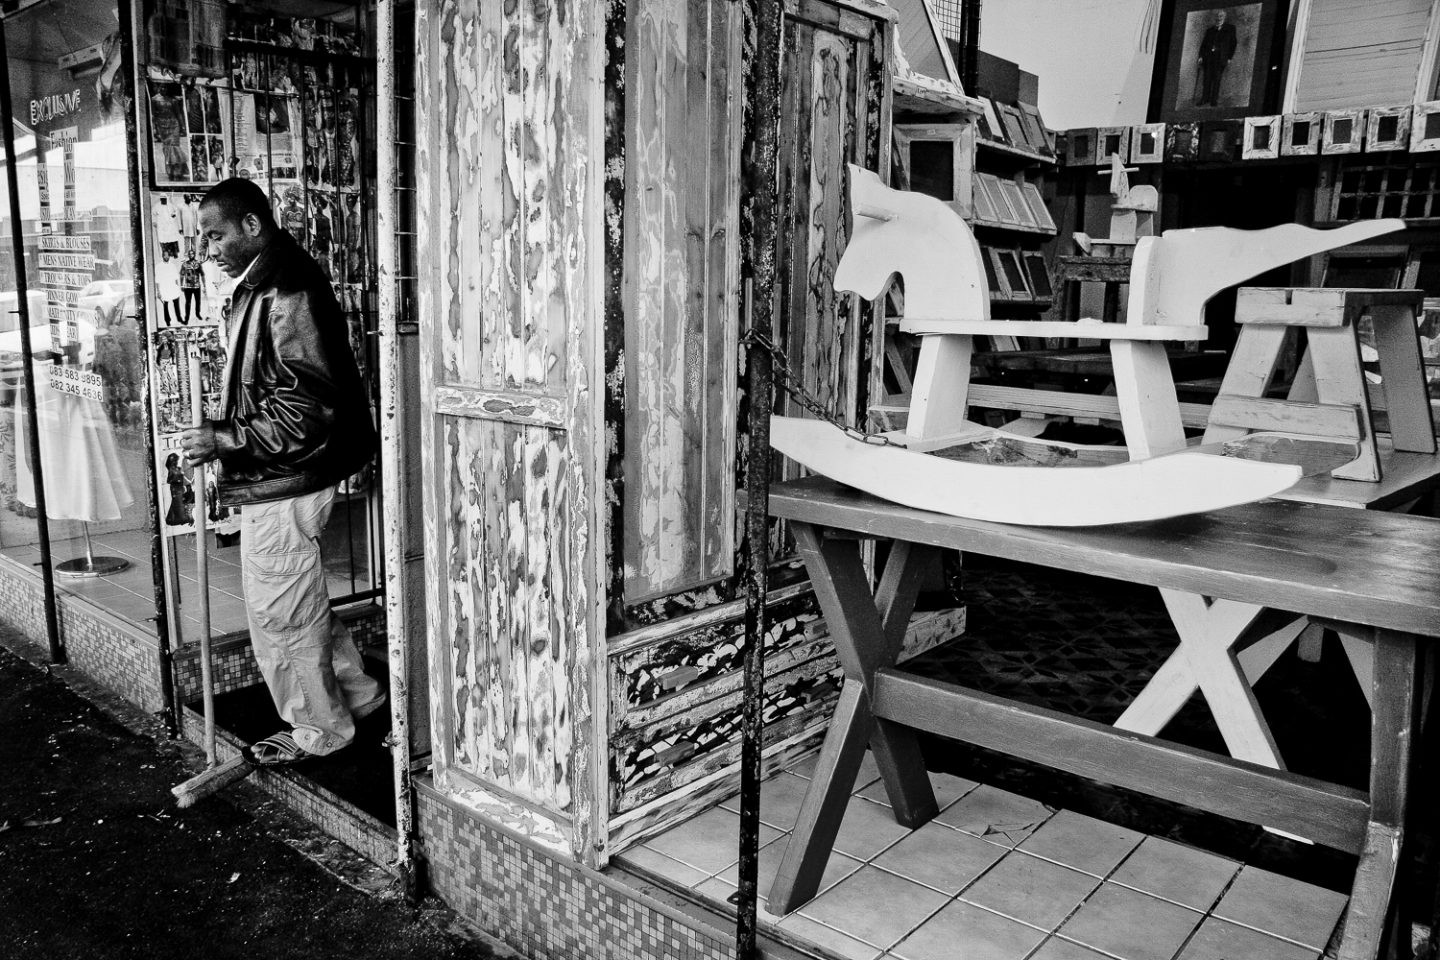 The owner of a woodworks store sweeps outside in the morning, Salt River 2011.